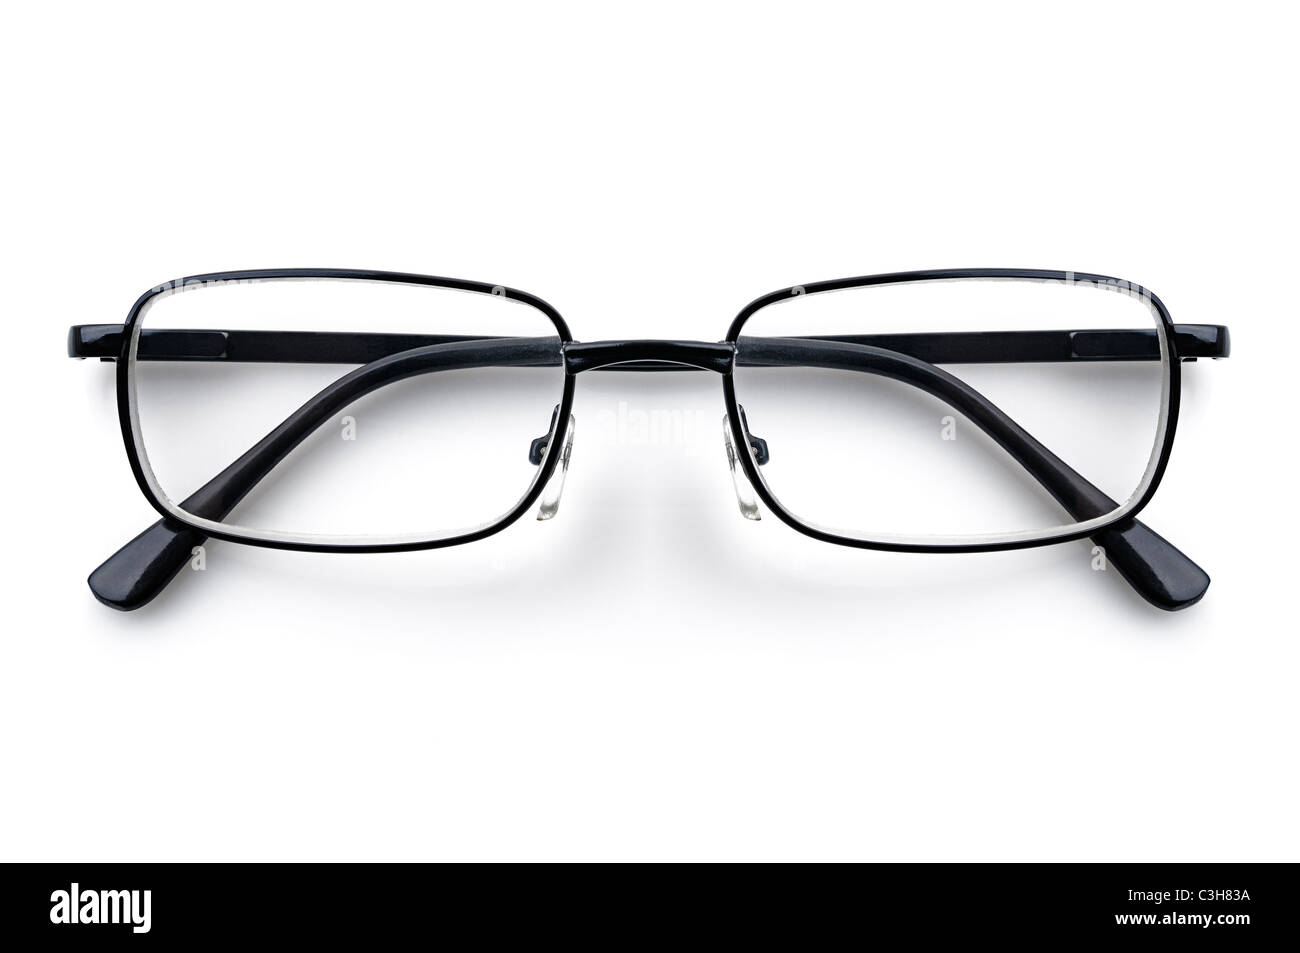 Spectacles - Stock Image